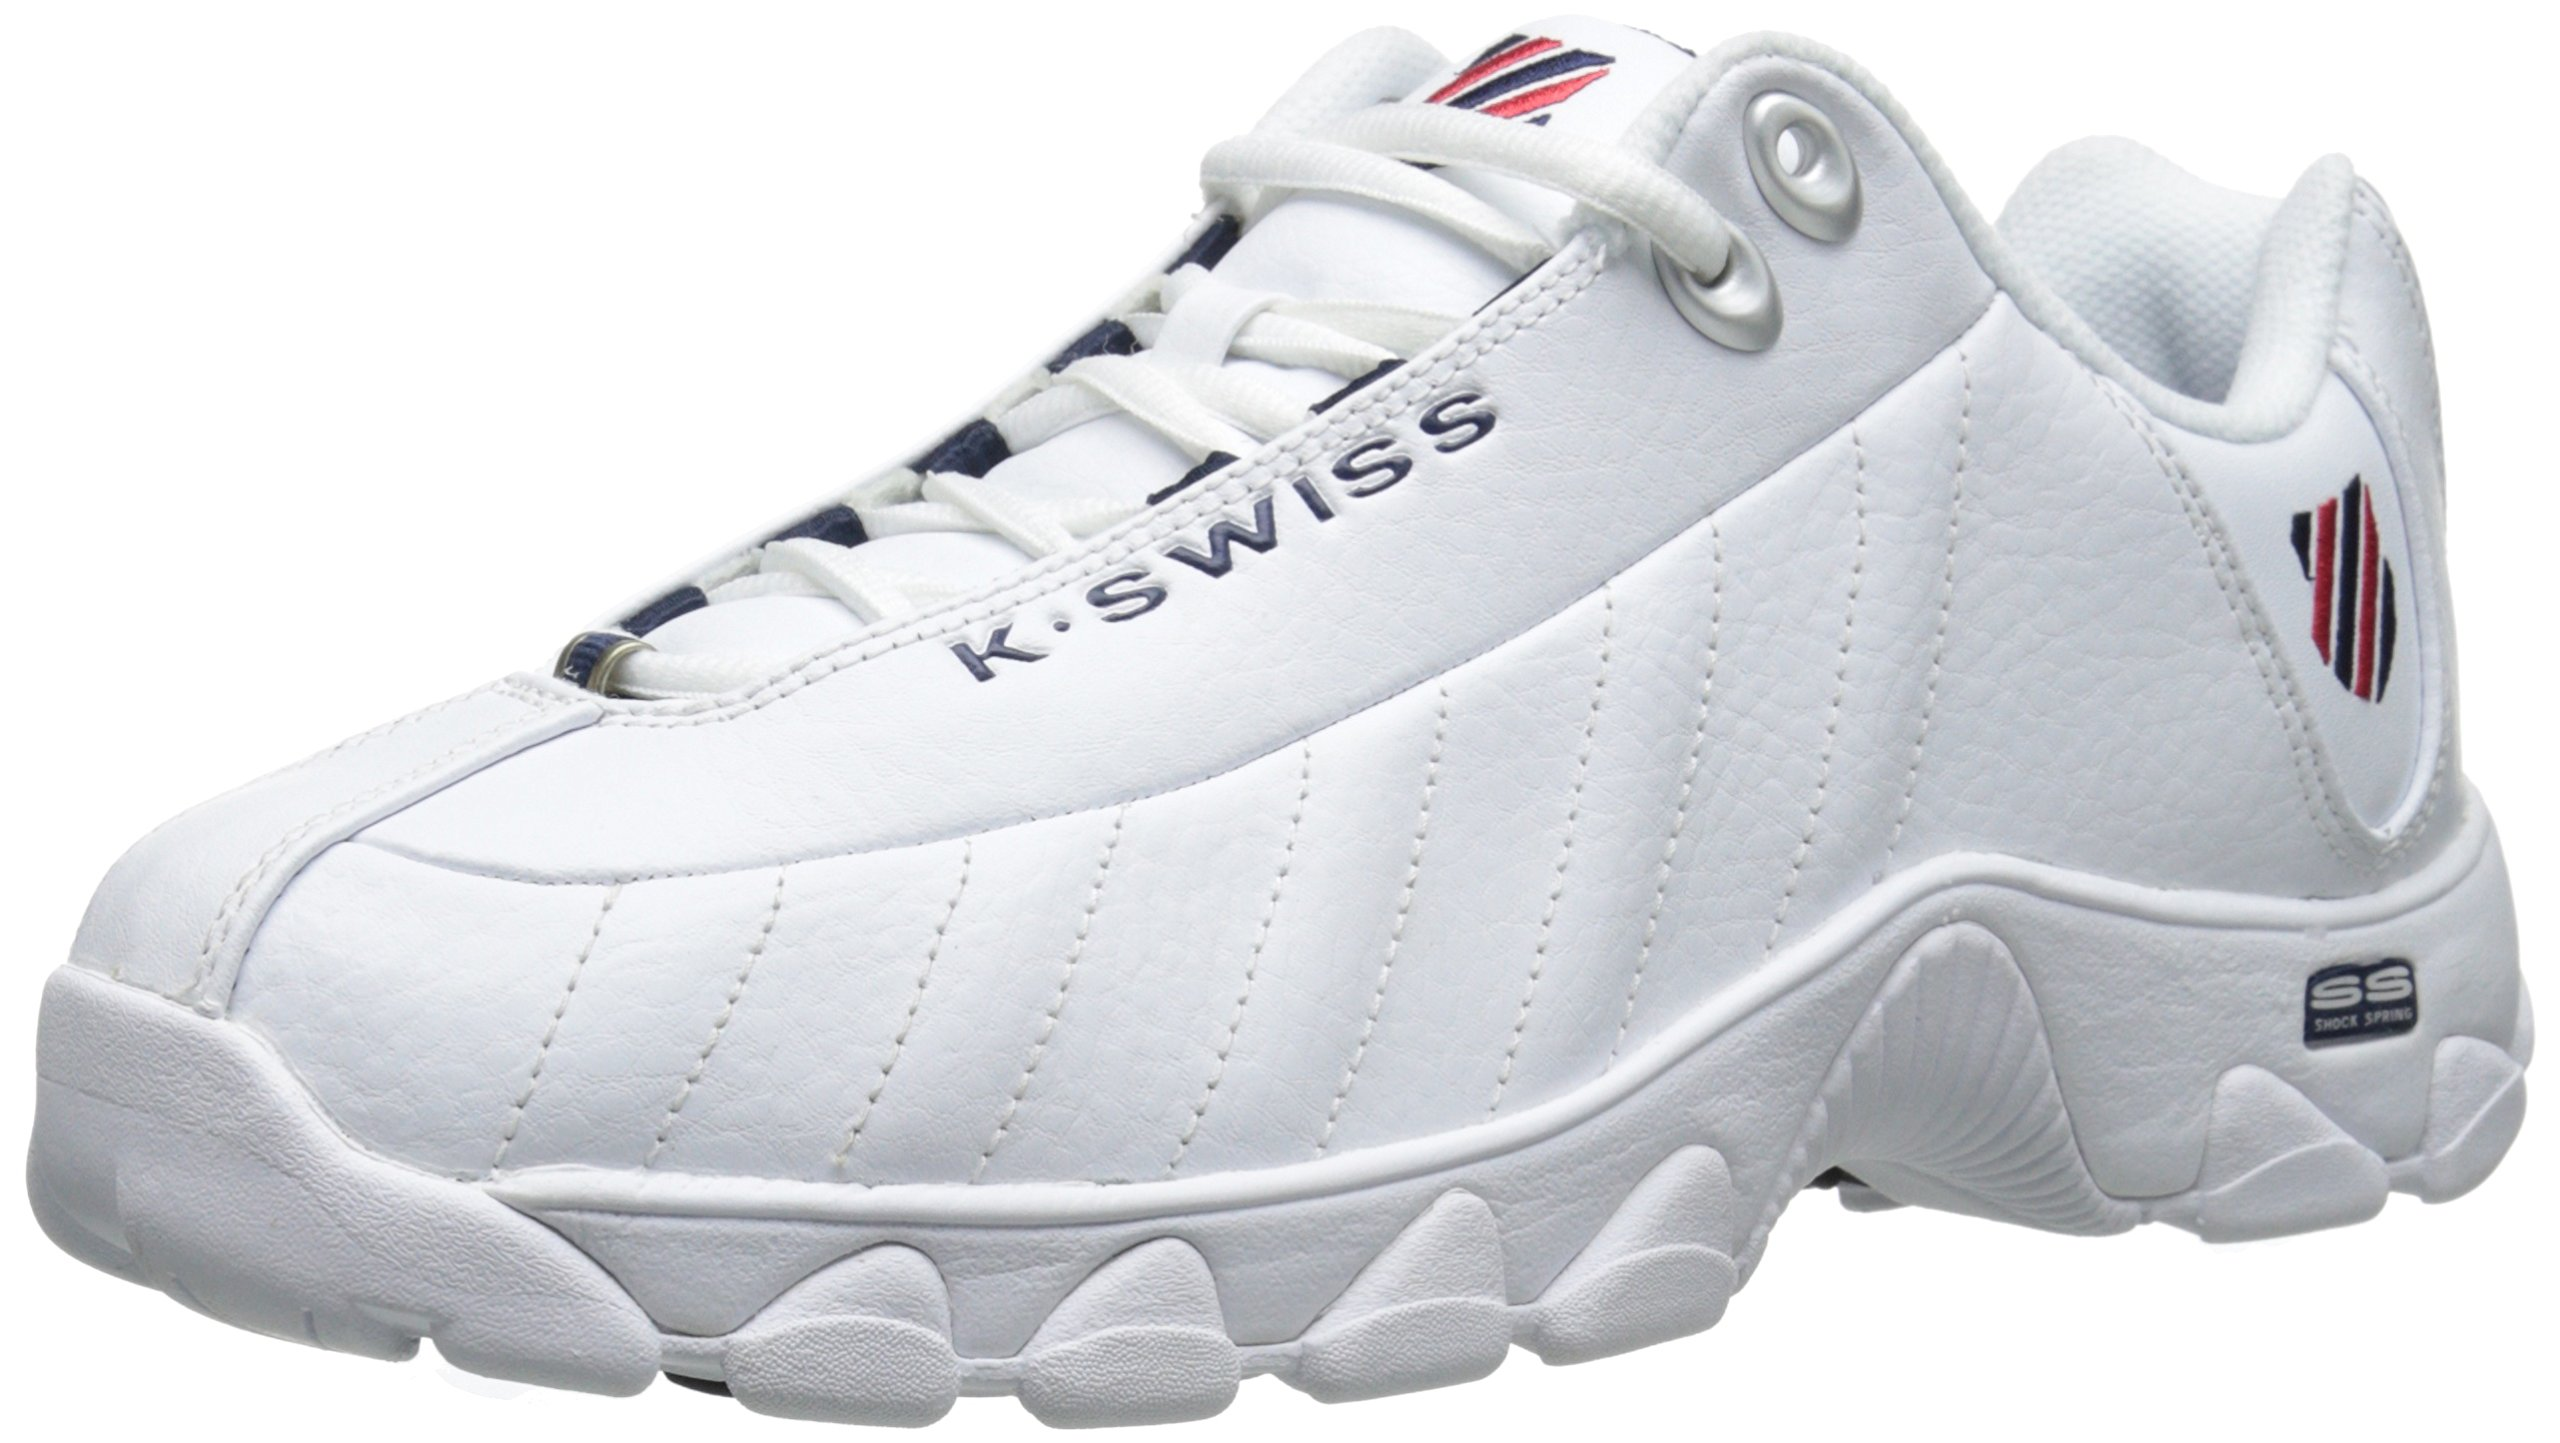 K-Swiss Men's ST329 CMF Training Shoe, White/Navy/Red, 11 M US by K-Swiss